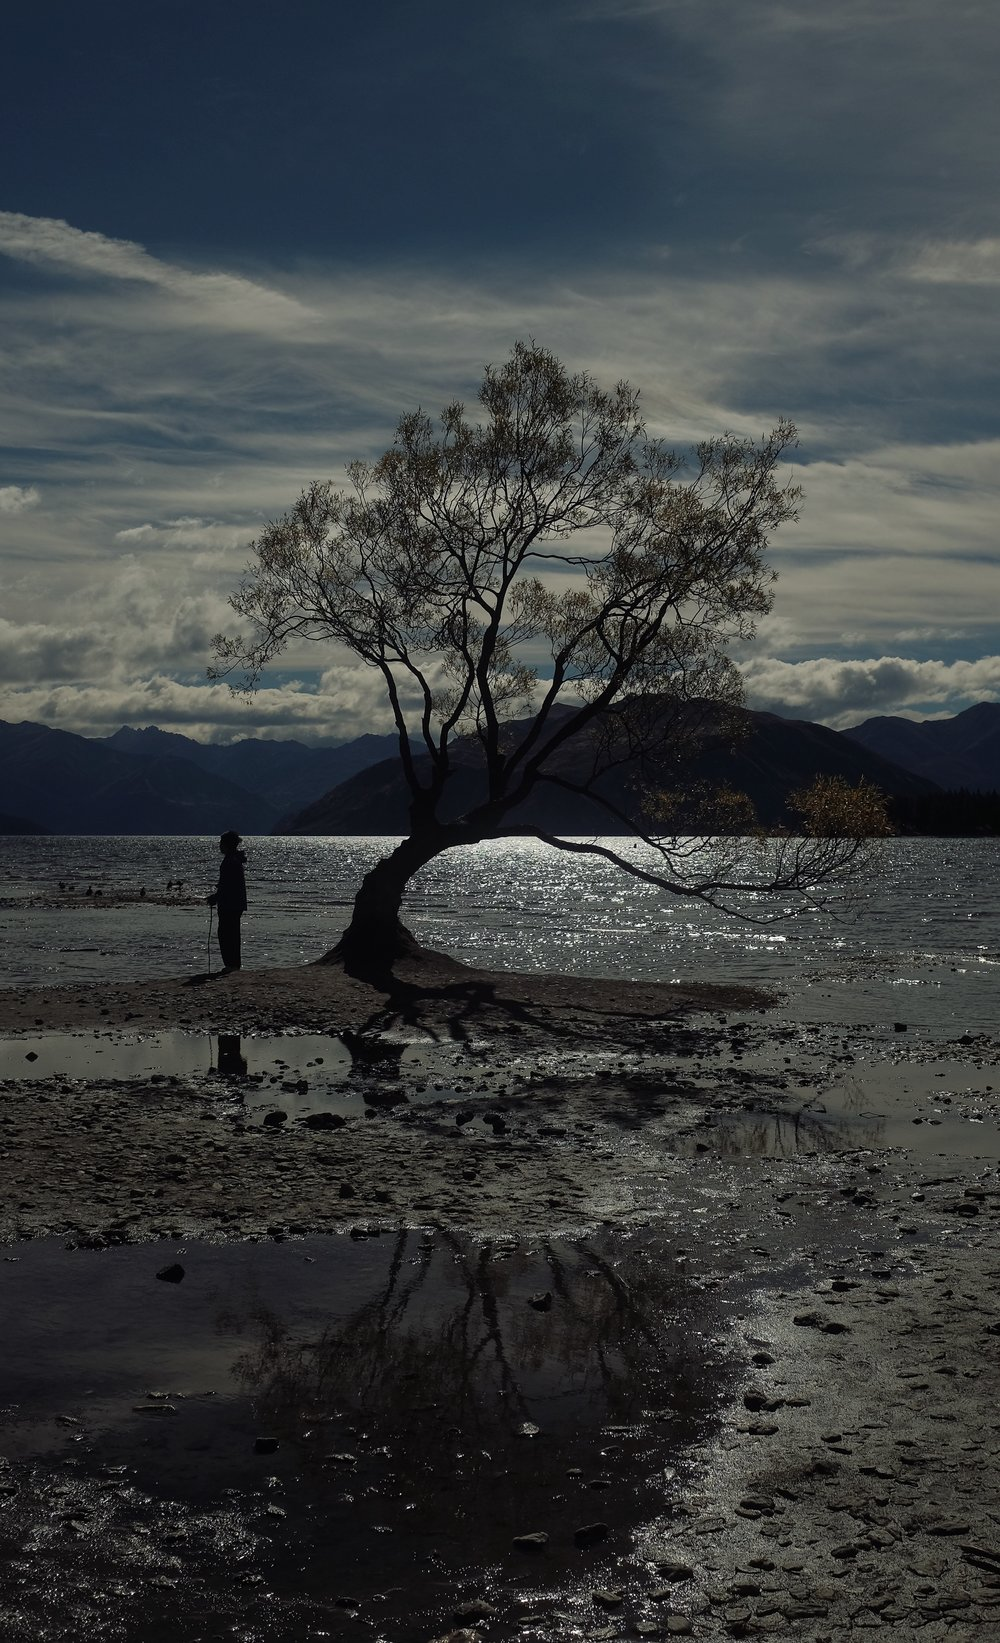 The famous tree on Lake Wanaka.